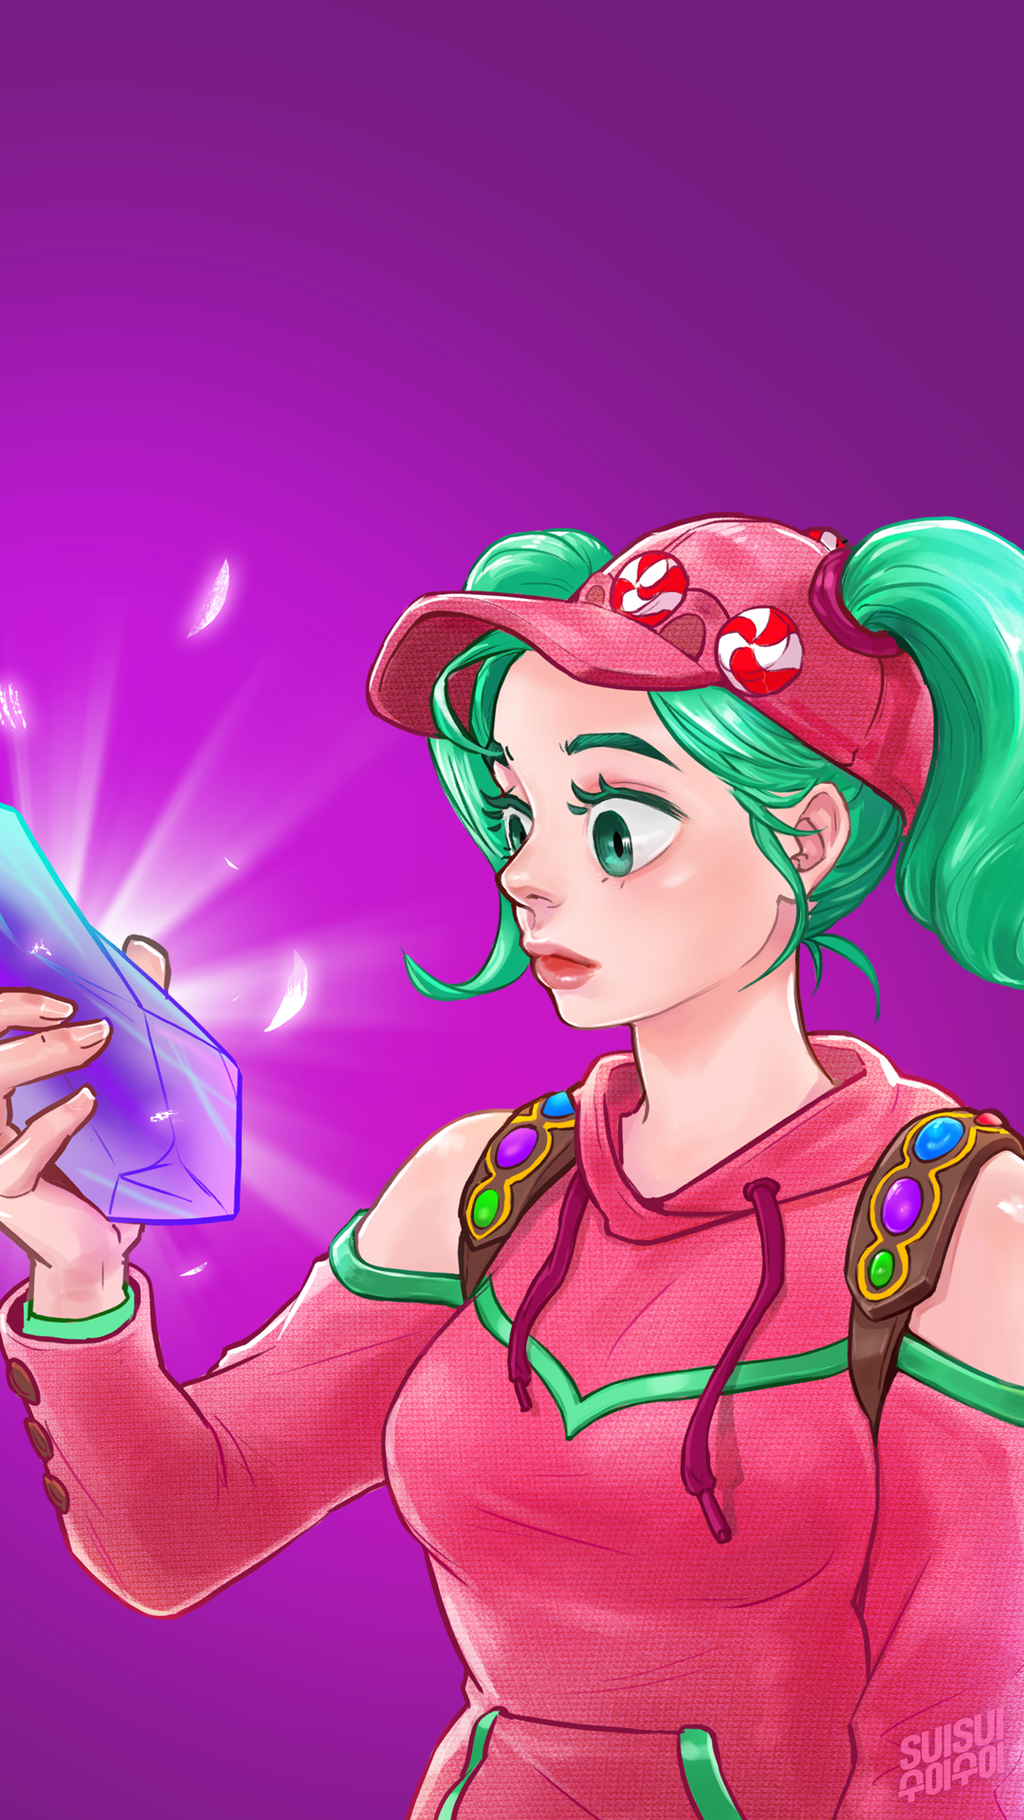 Fortnite Zoey By Hey-Suisui On Deviantart-5989